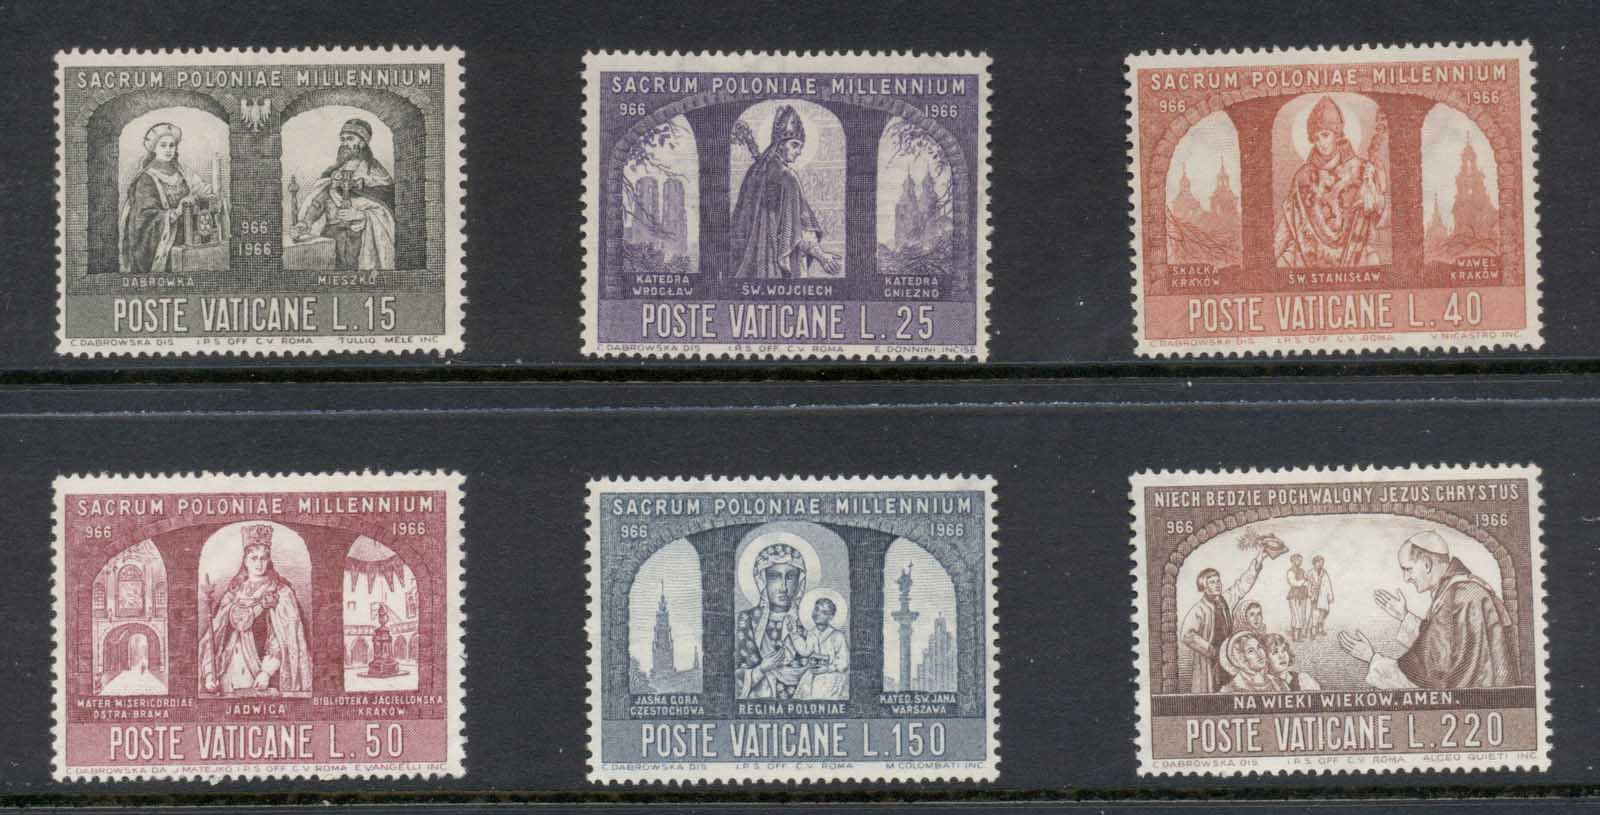 Vatican 1966 Millenium of Christianization of Poland MLH